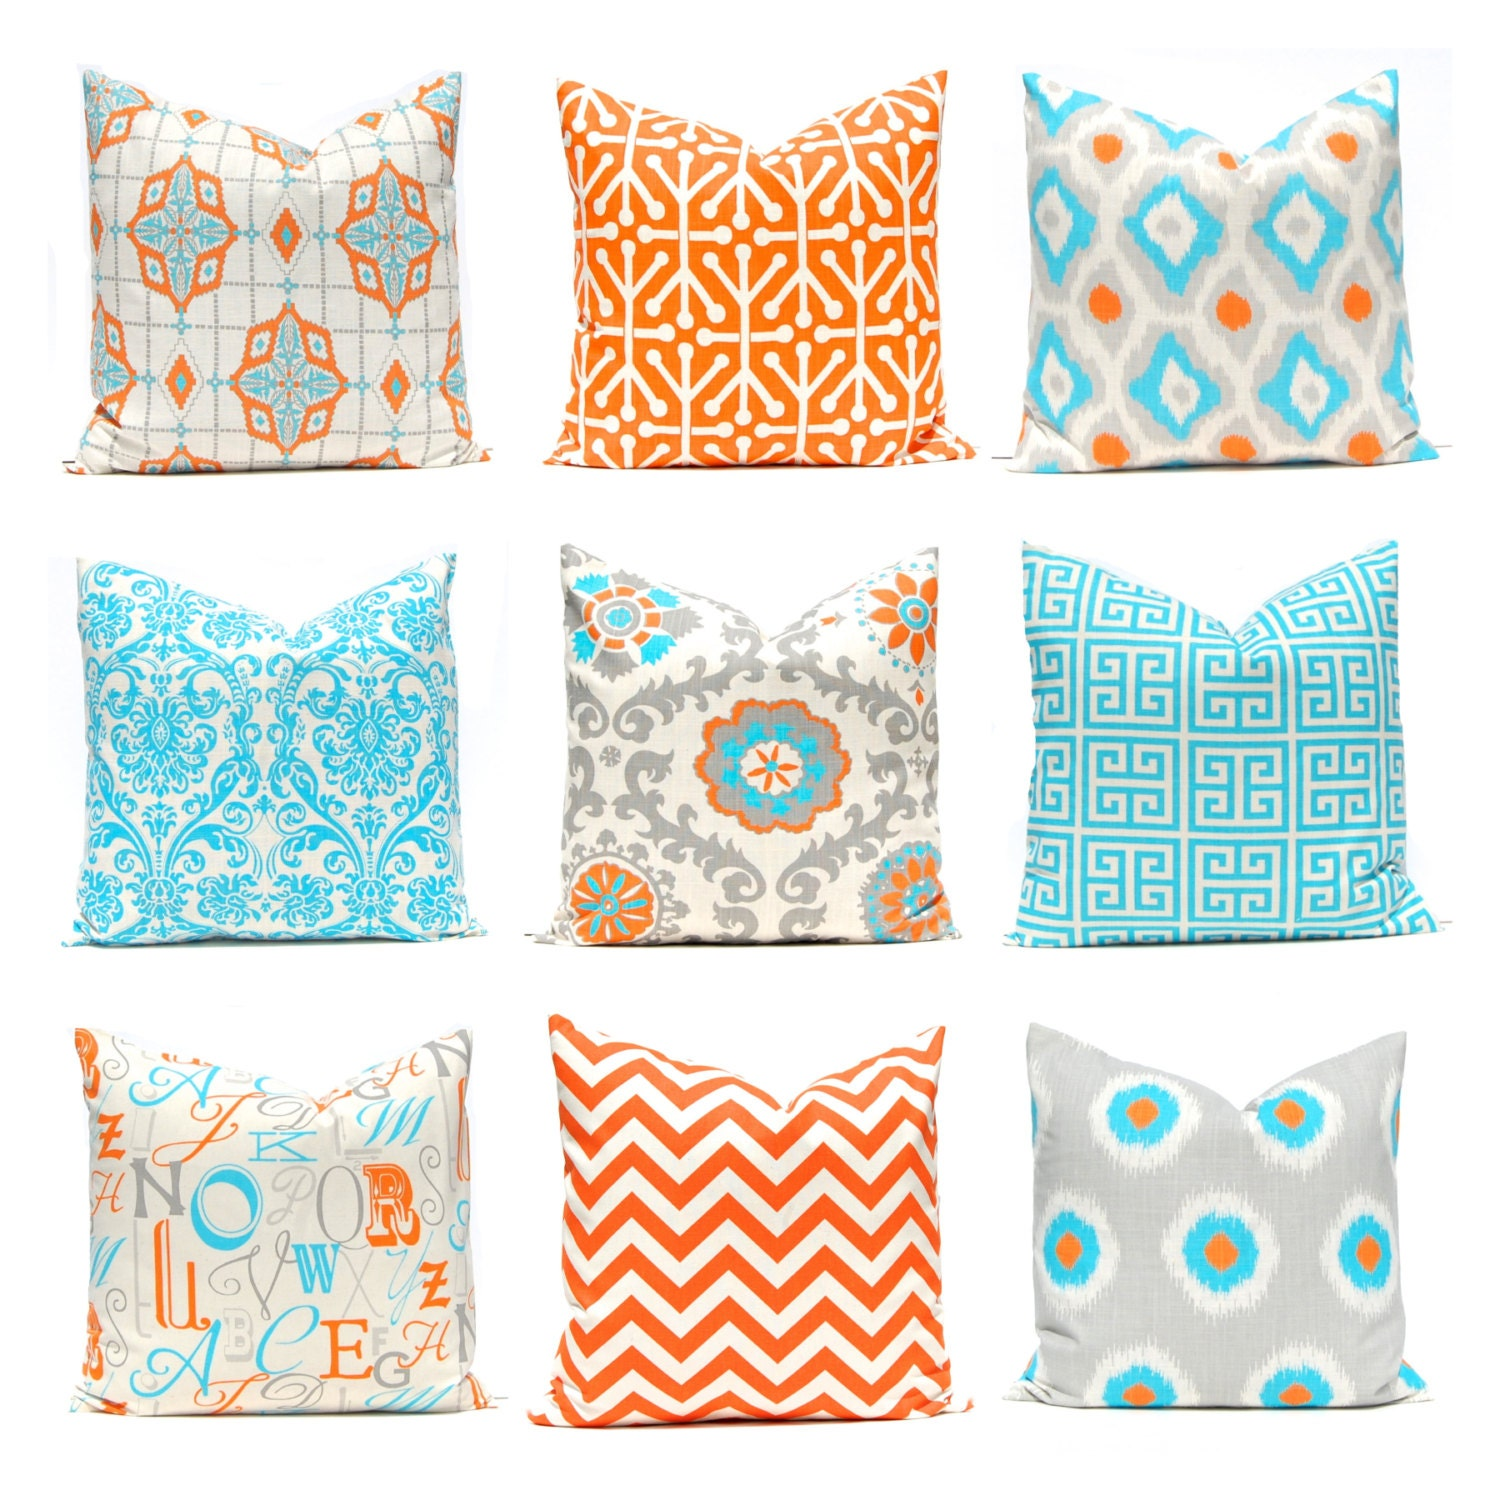 Orange Pillow Covers Turquoise Pillows Chevron Pillow